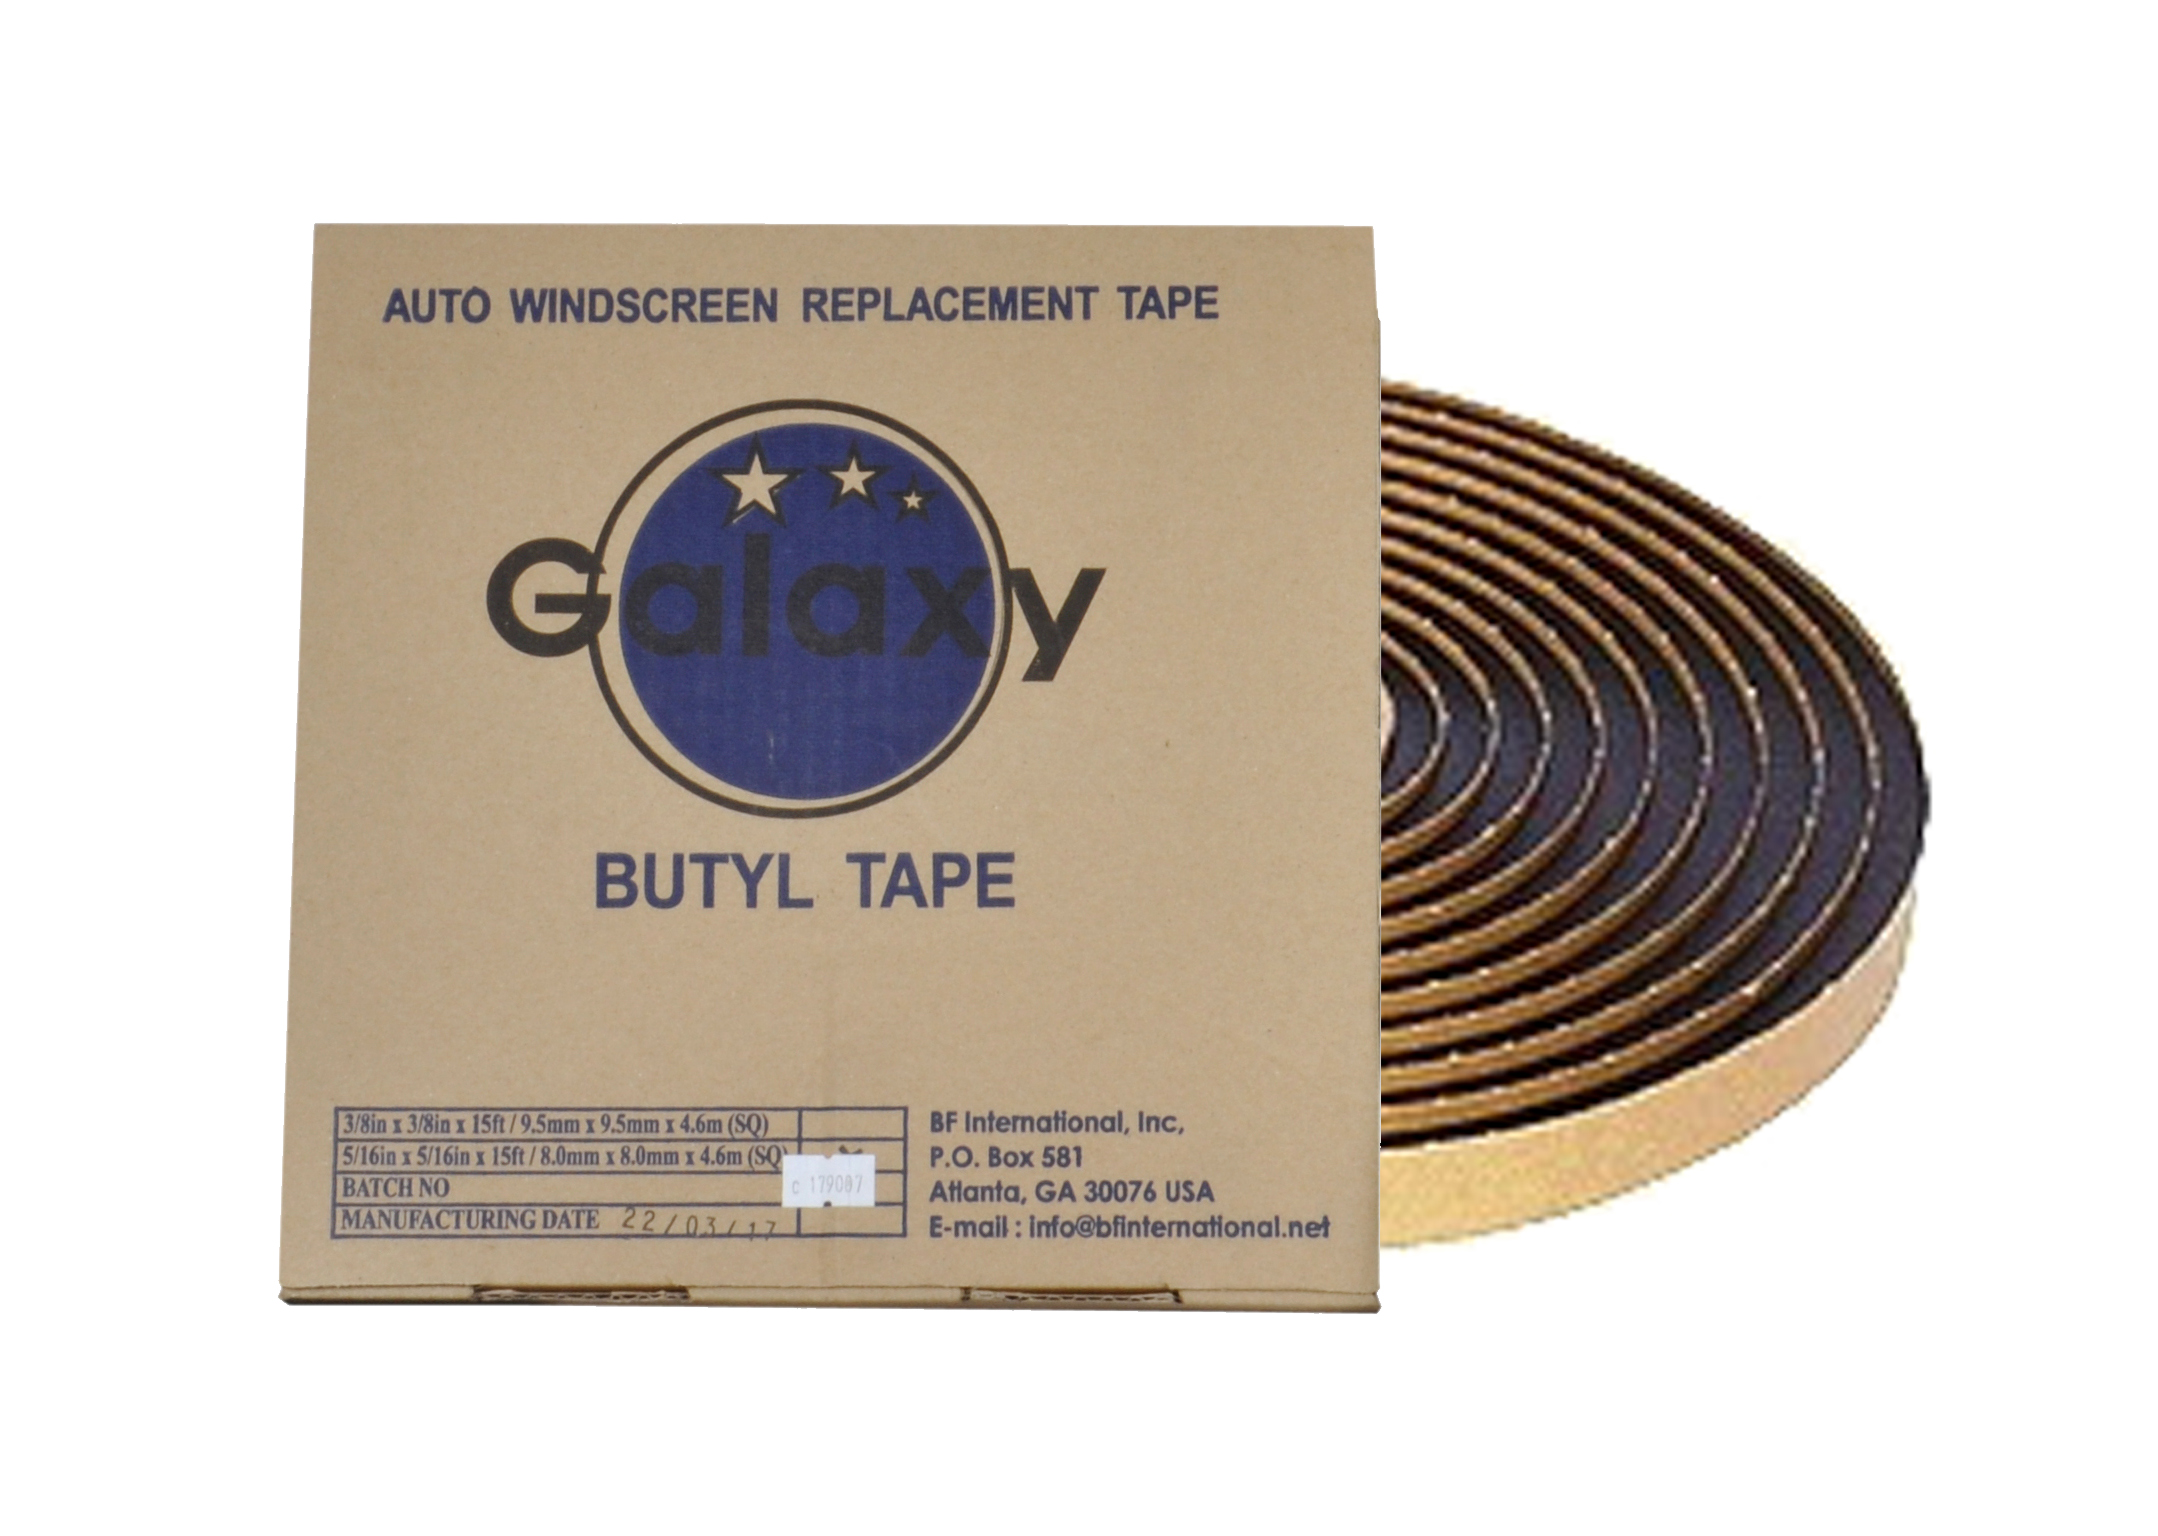 Butyl Tape / Windscreen Tape Image